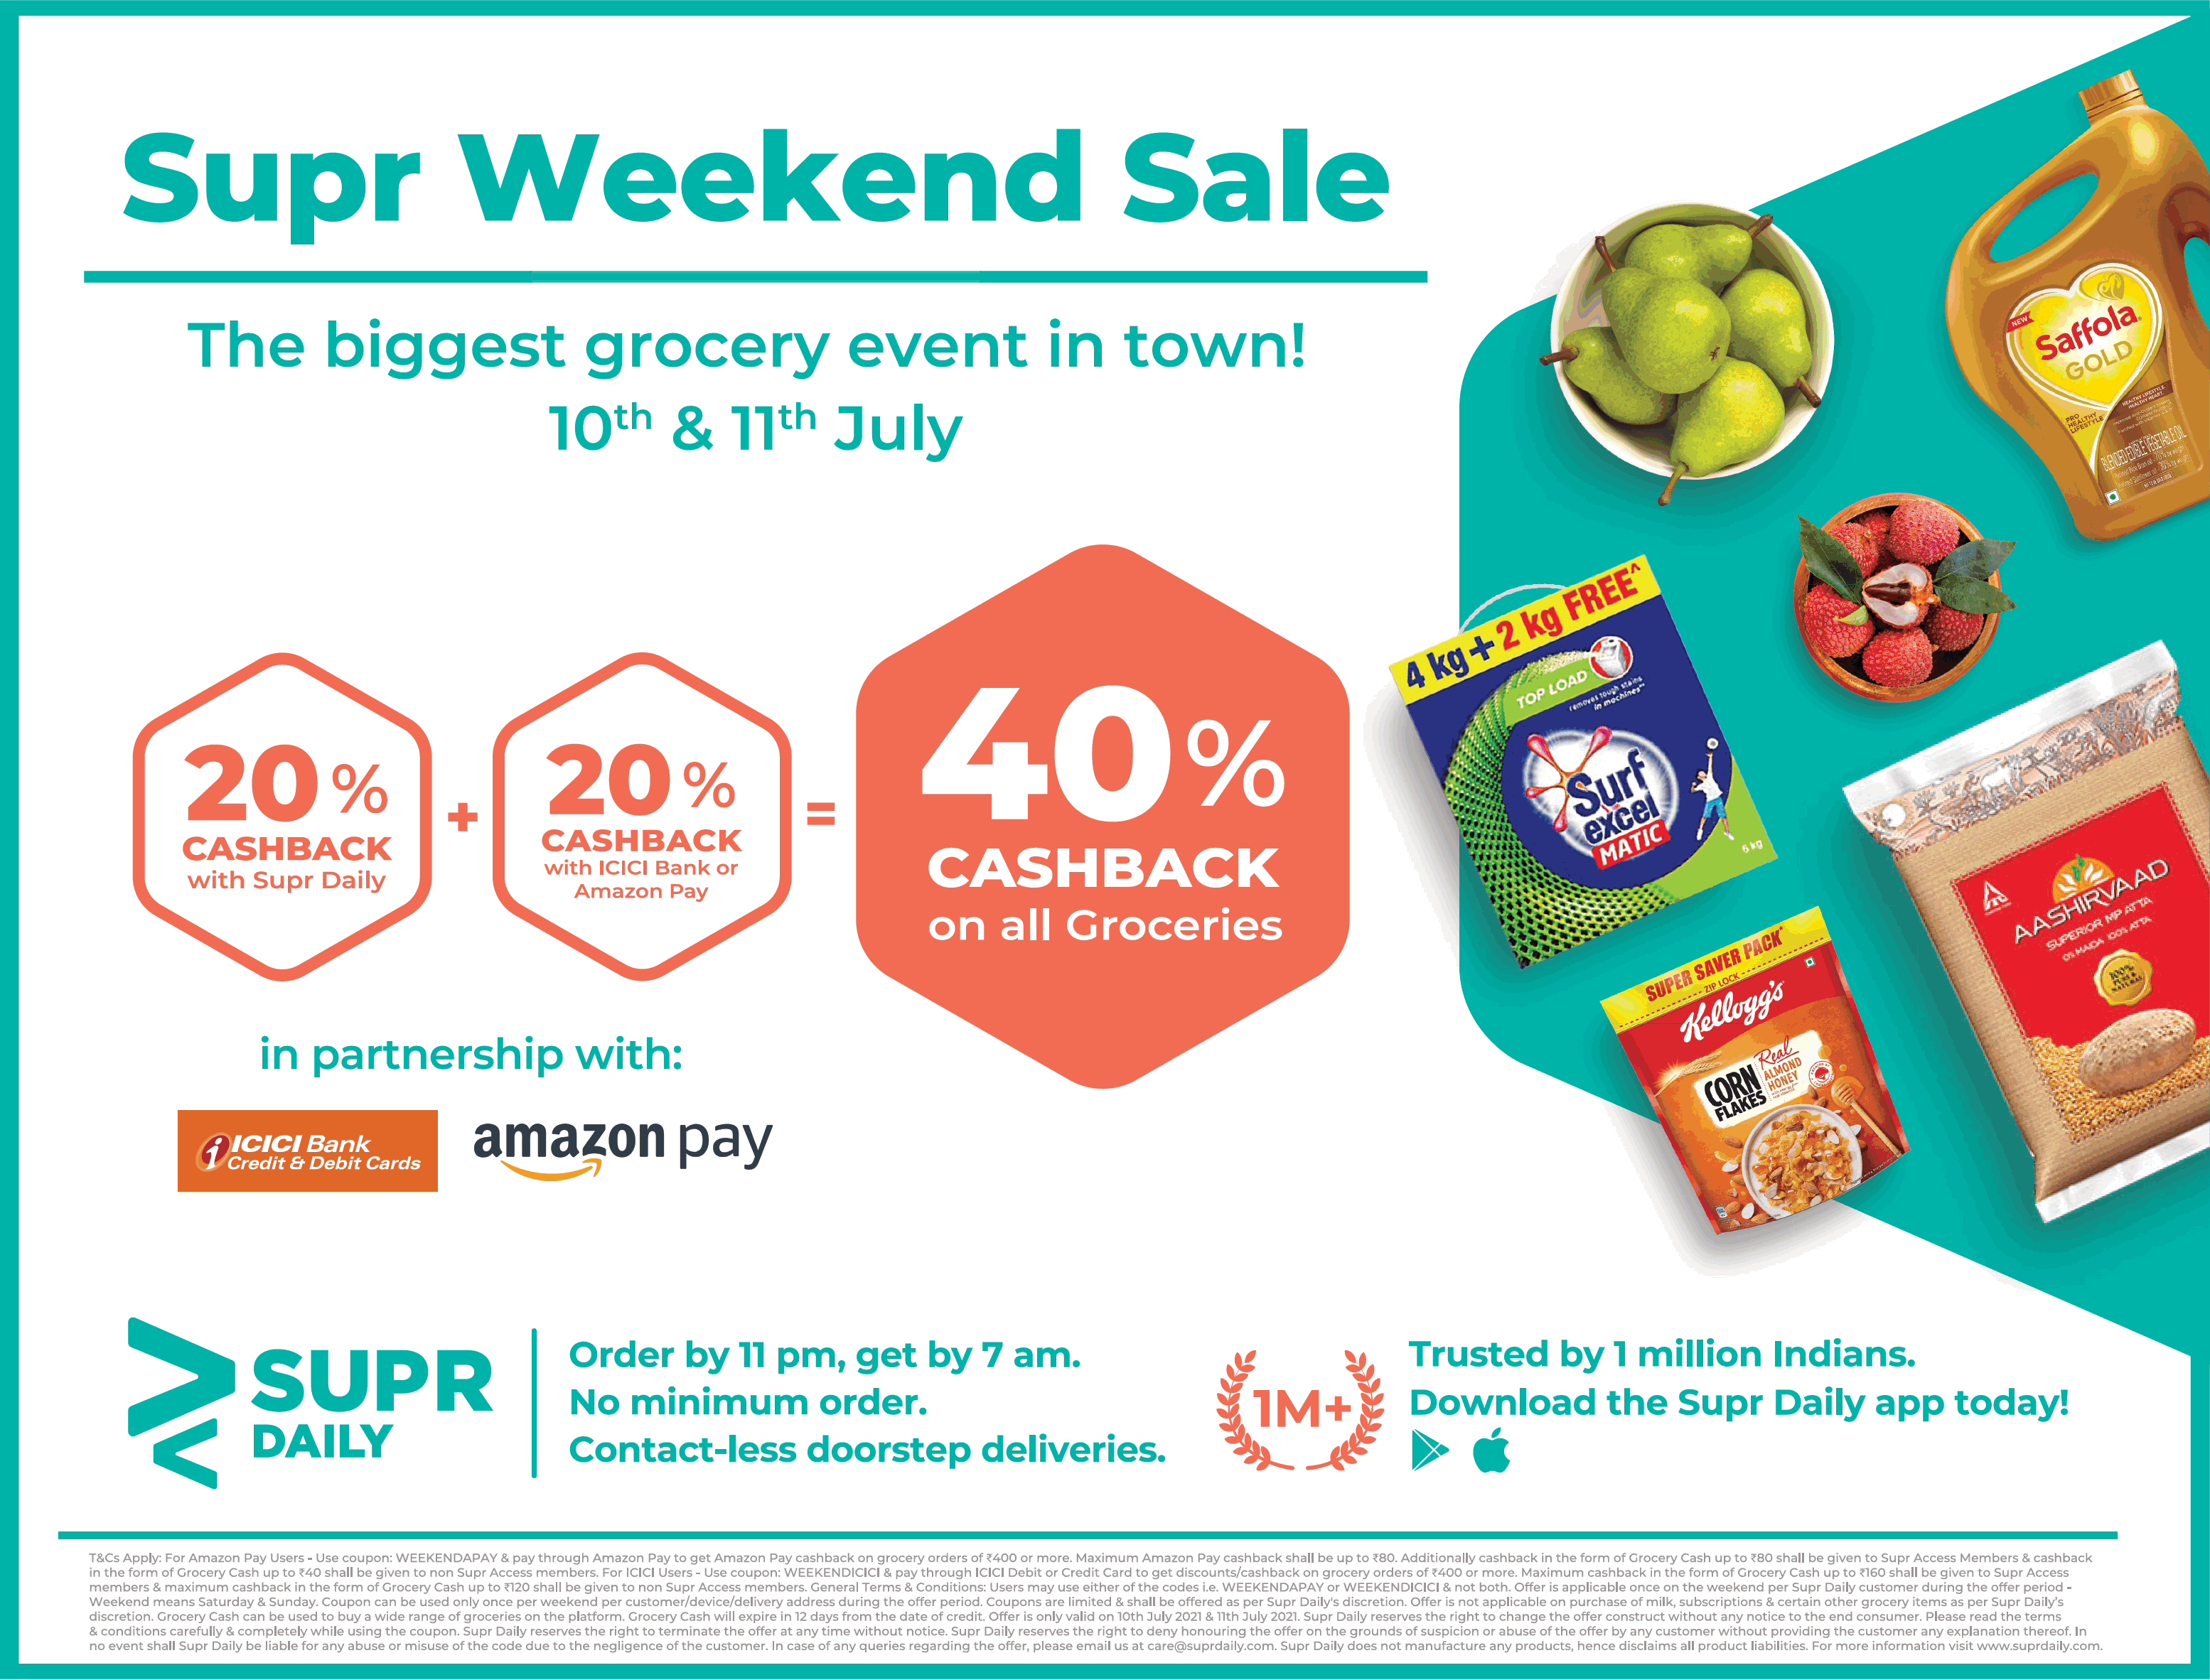 supr-daily-supr-weekend-sale-40%-cashback-on-all-groceries-ad-toi-mumbai-11-7-2021